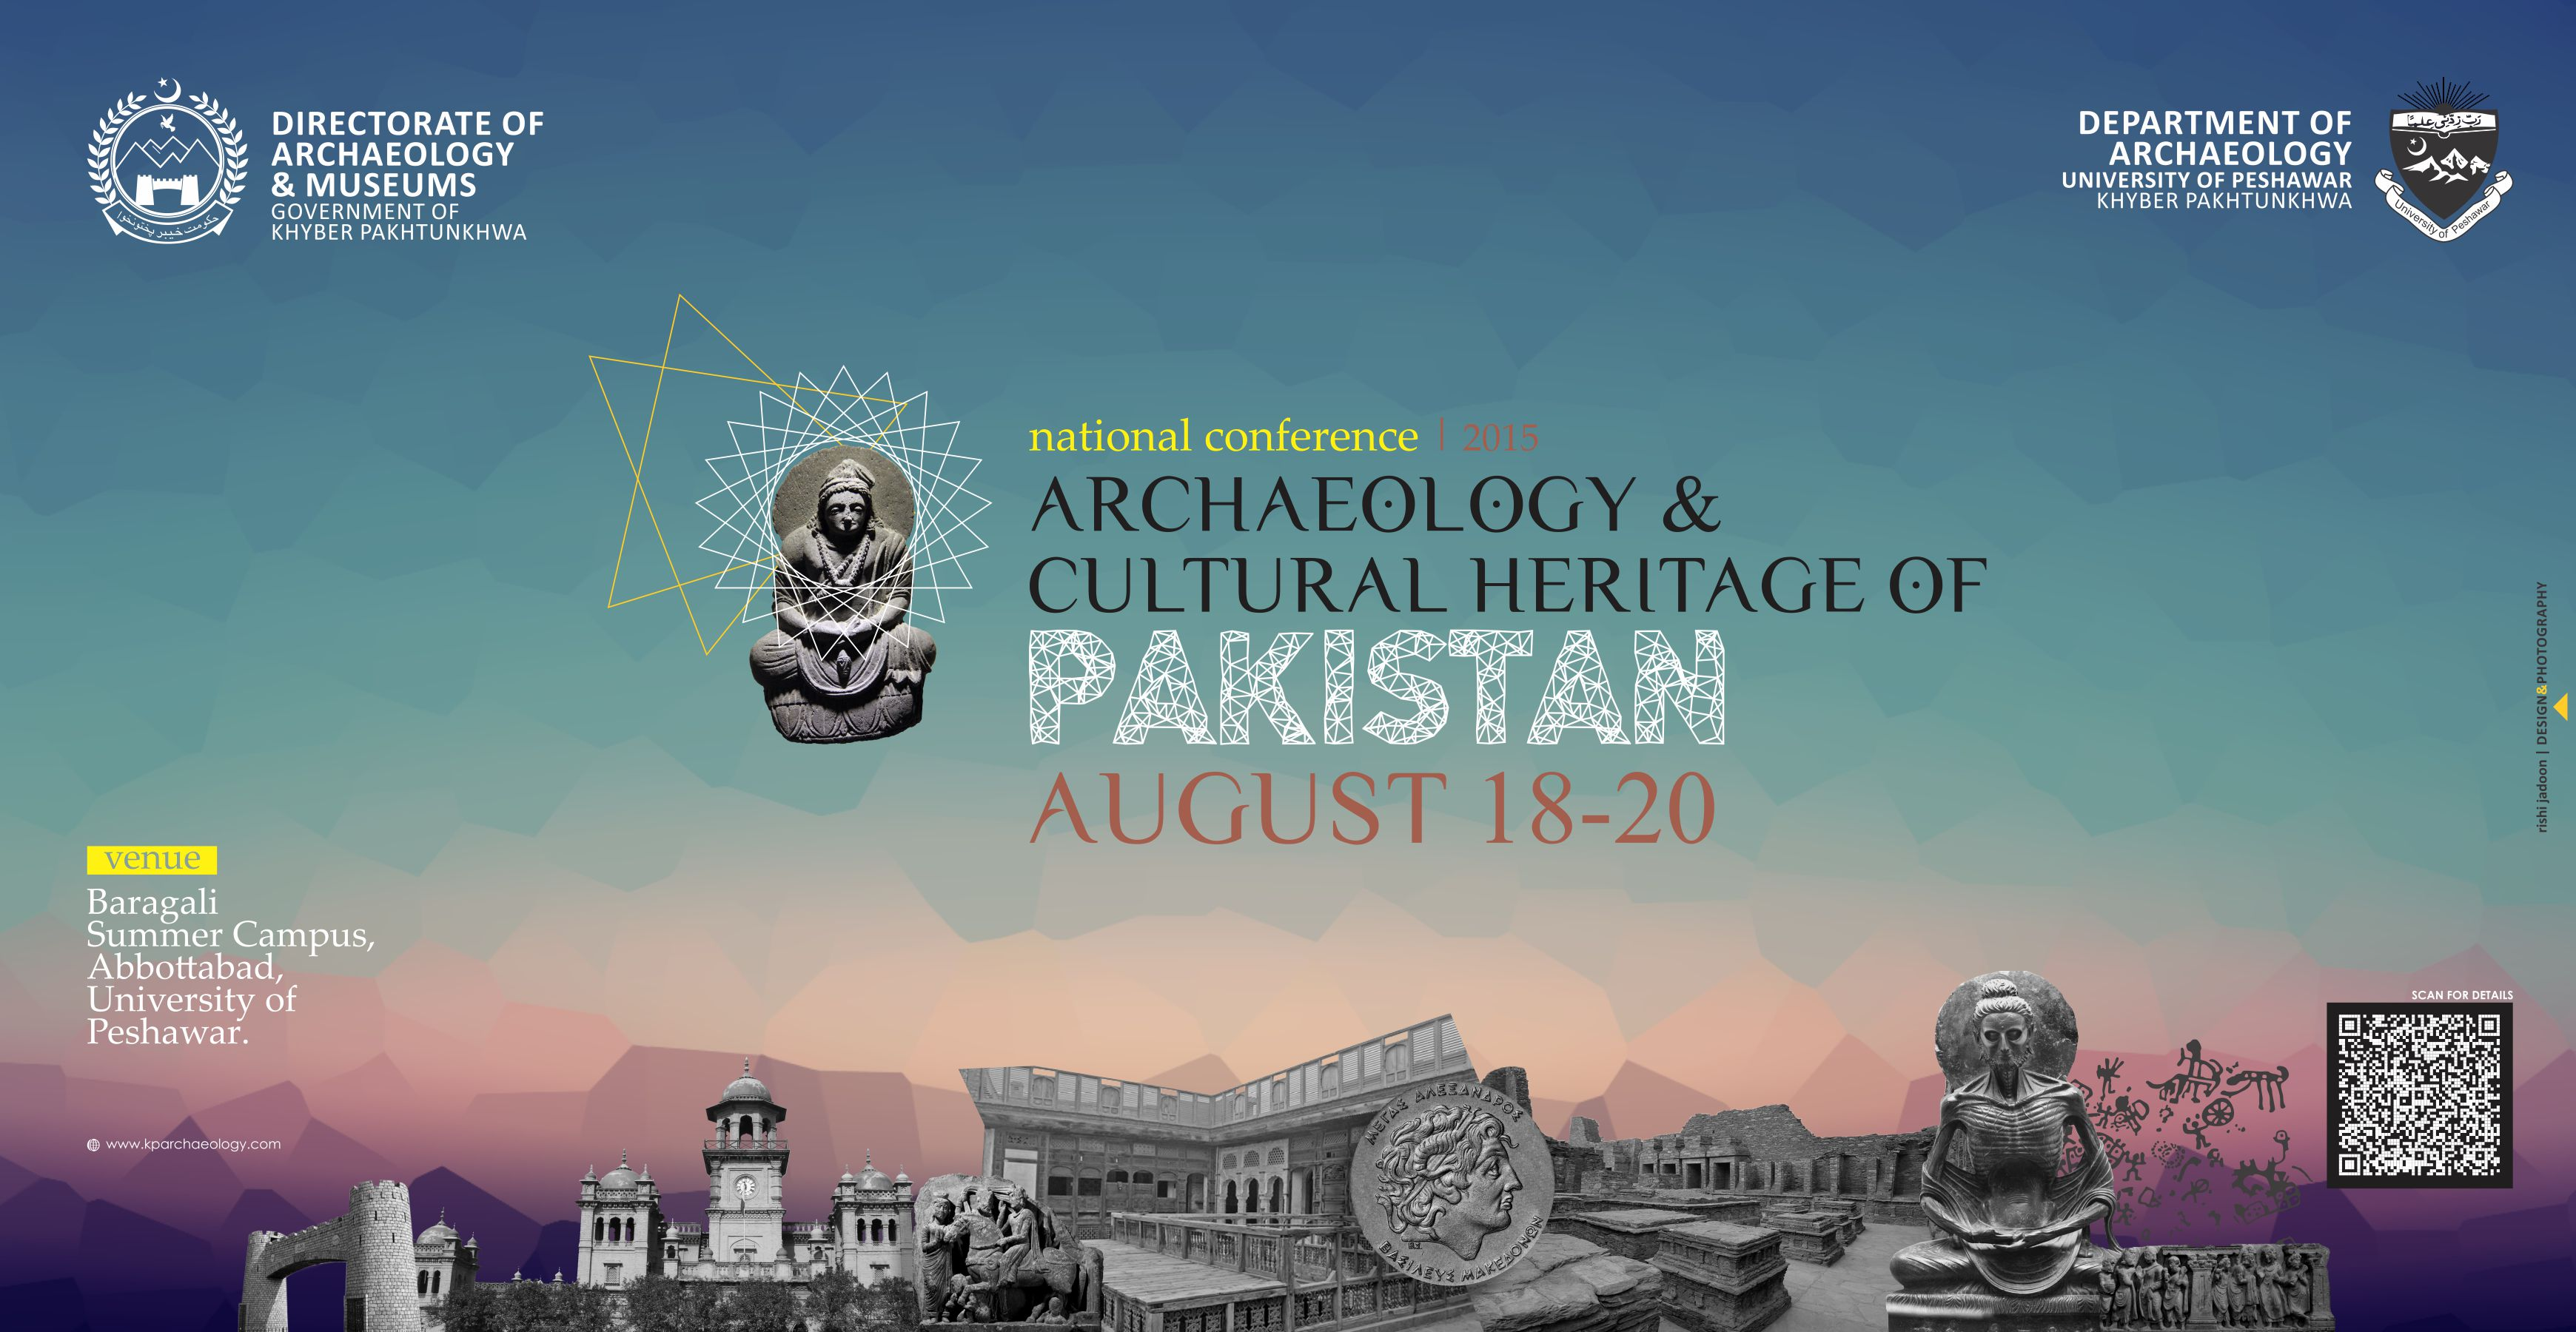 National Conference on the Archaeology and Cultural Heritage of Pakistan